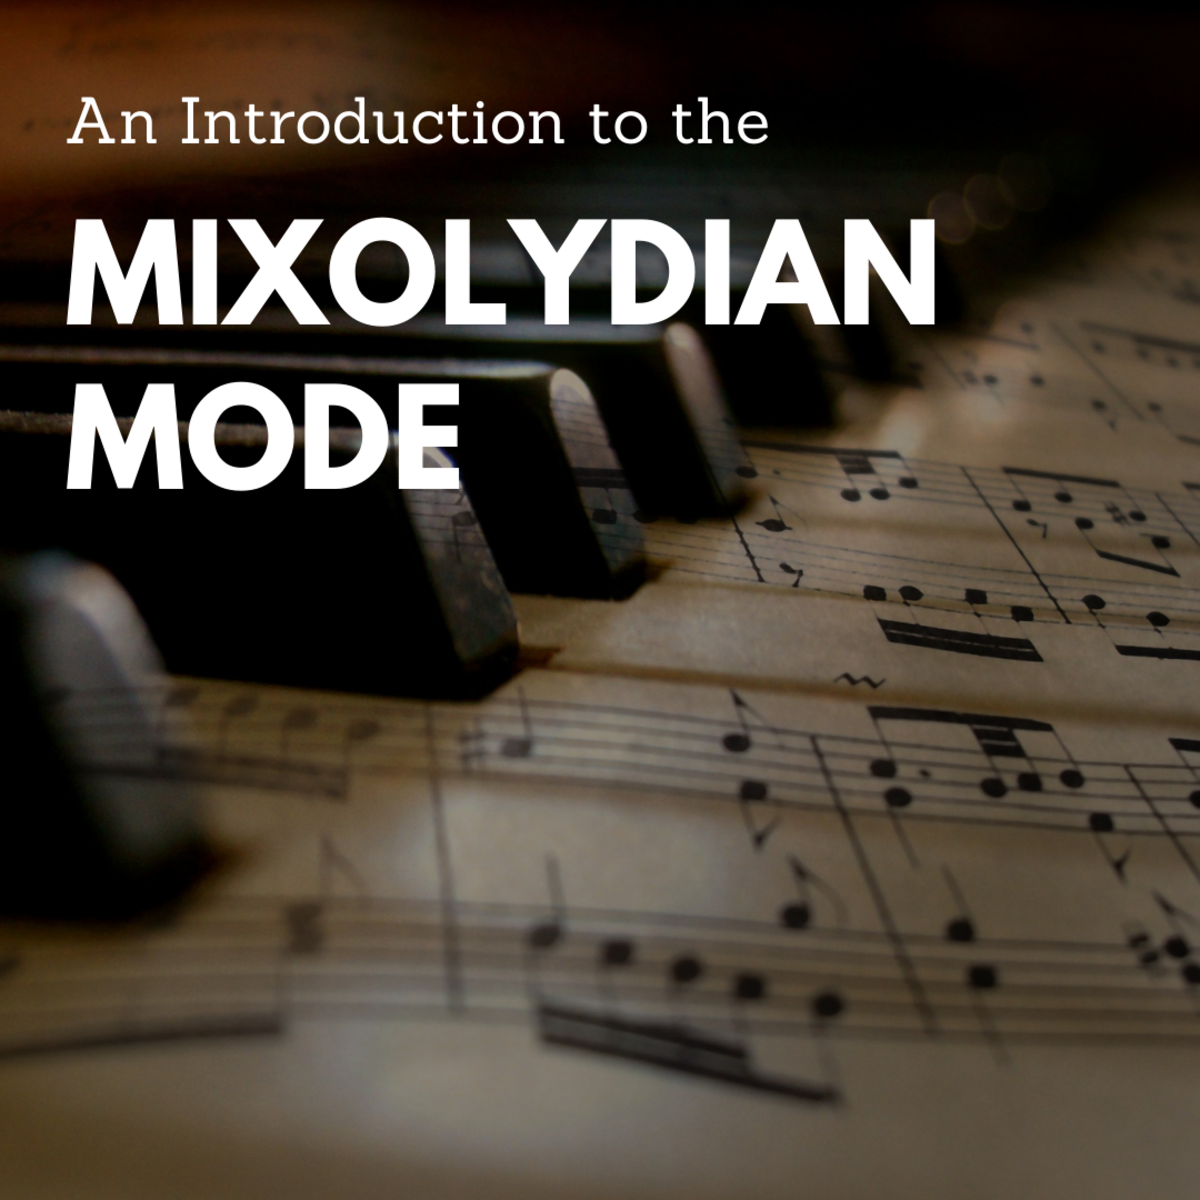 Learn more about this type of diatonic scale.